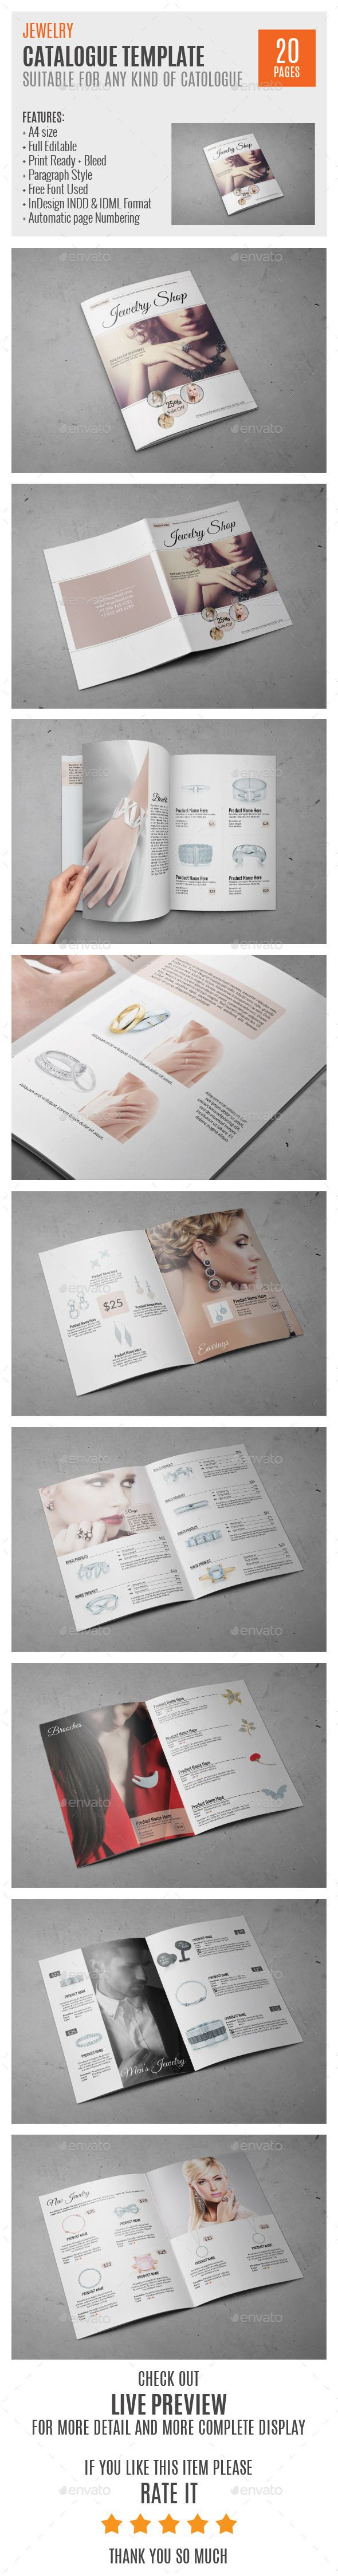 Jewelry A4 InDesign Catalog Template HP0011 | Pinterest